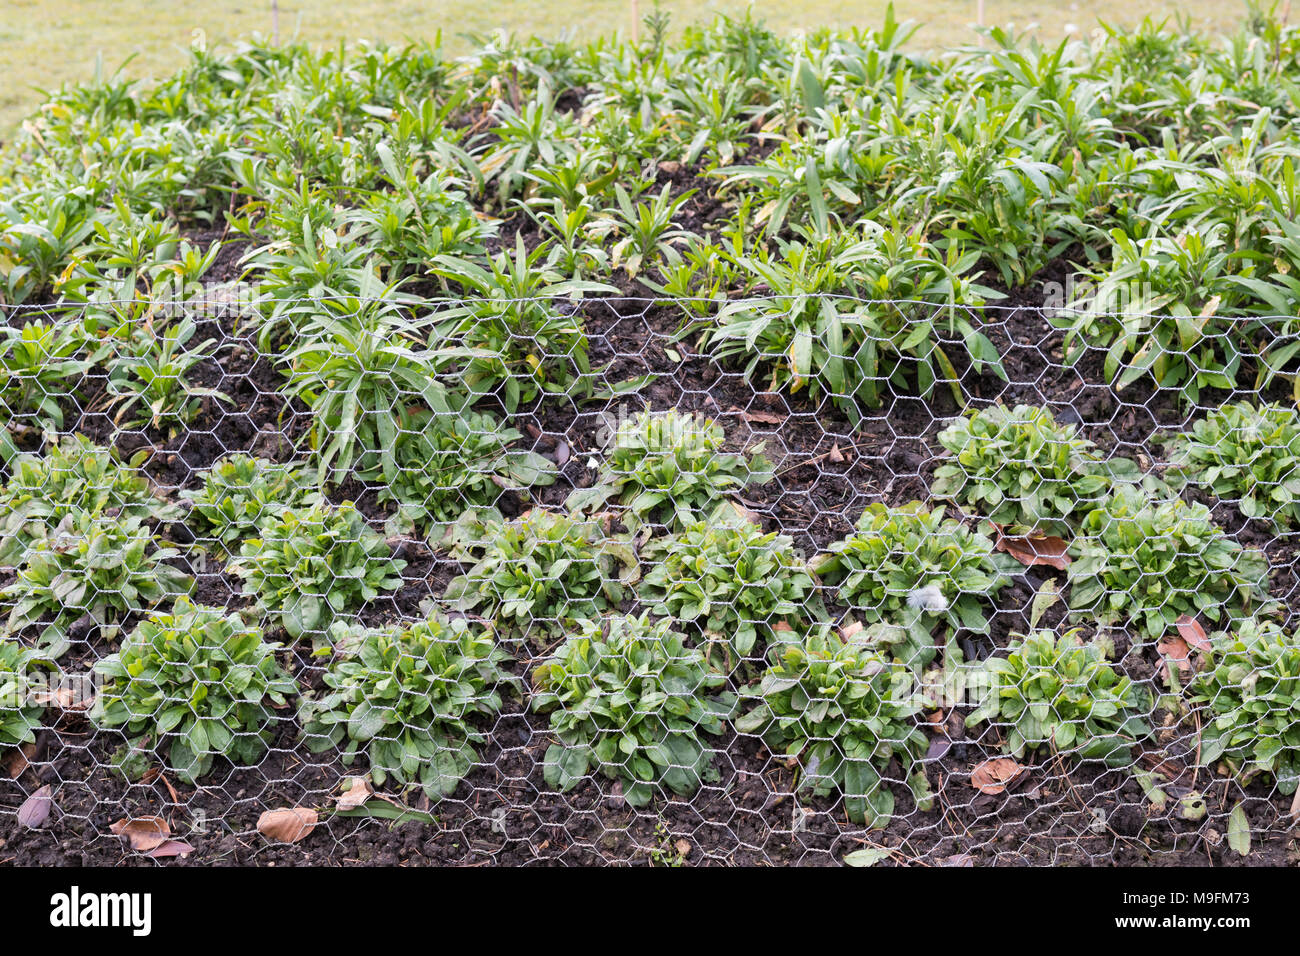 wire mesh chicken wire protecting bedding plants from rabbits - Stock Image